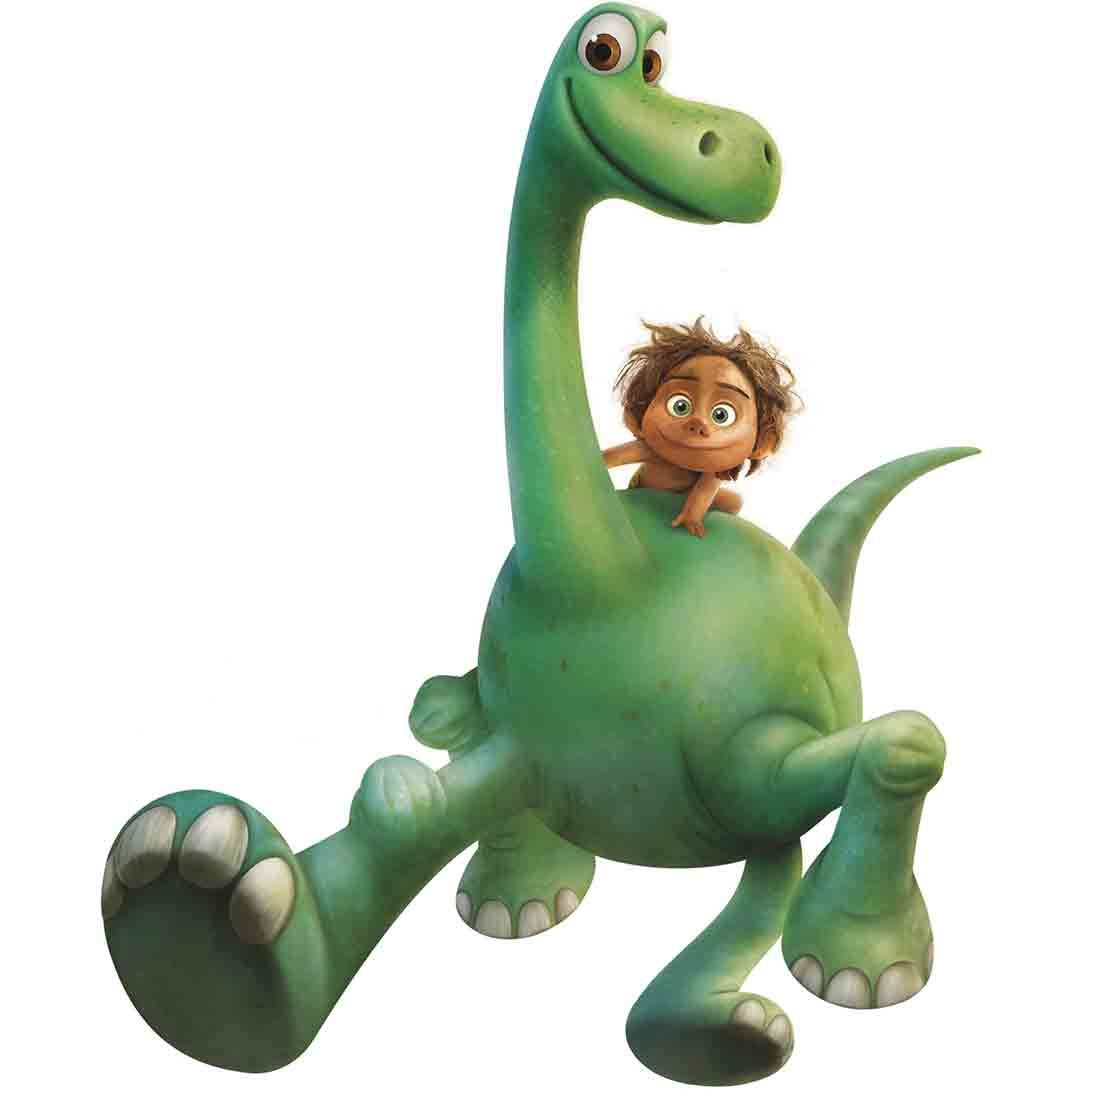 Arlo The Good Dinosaur Giant